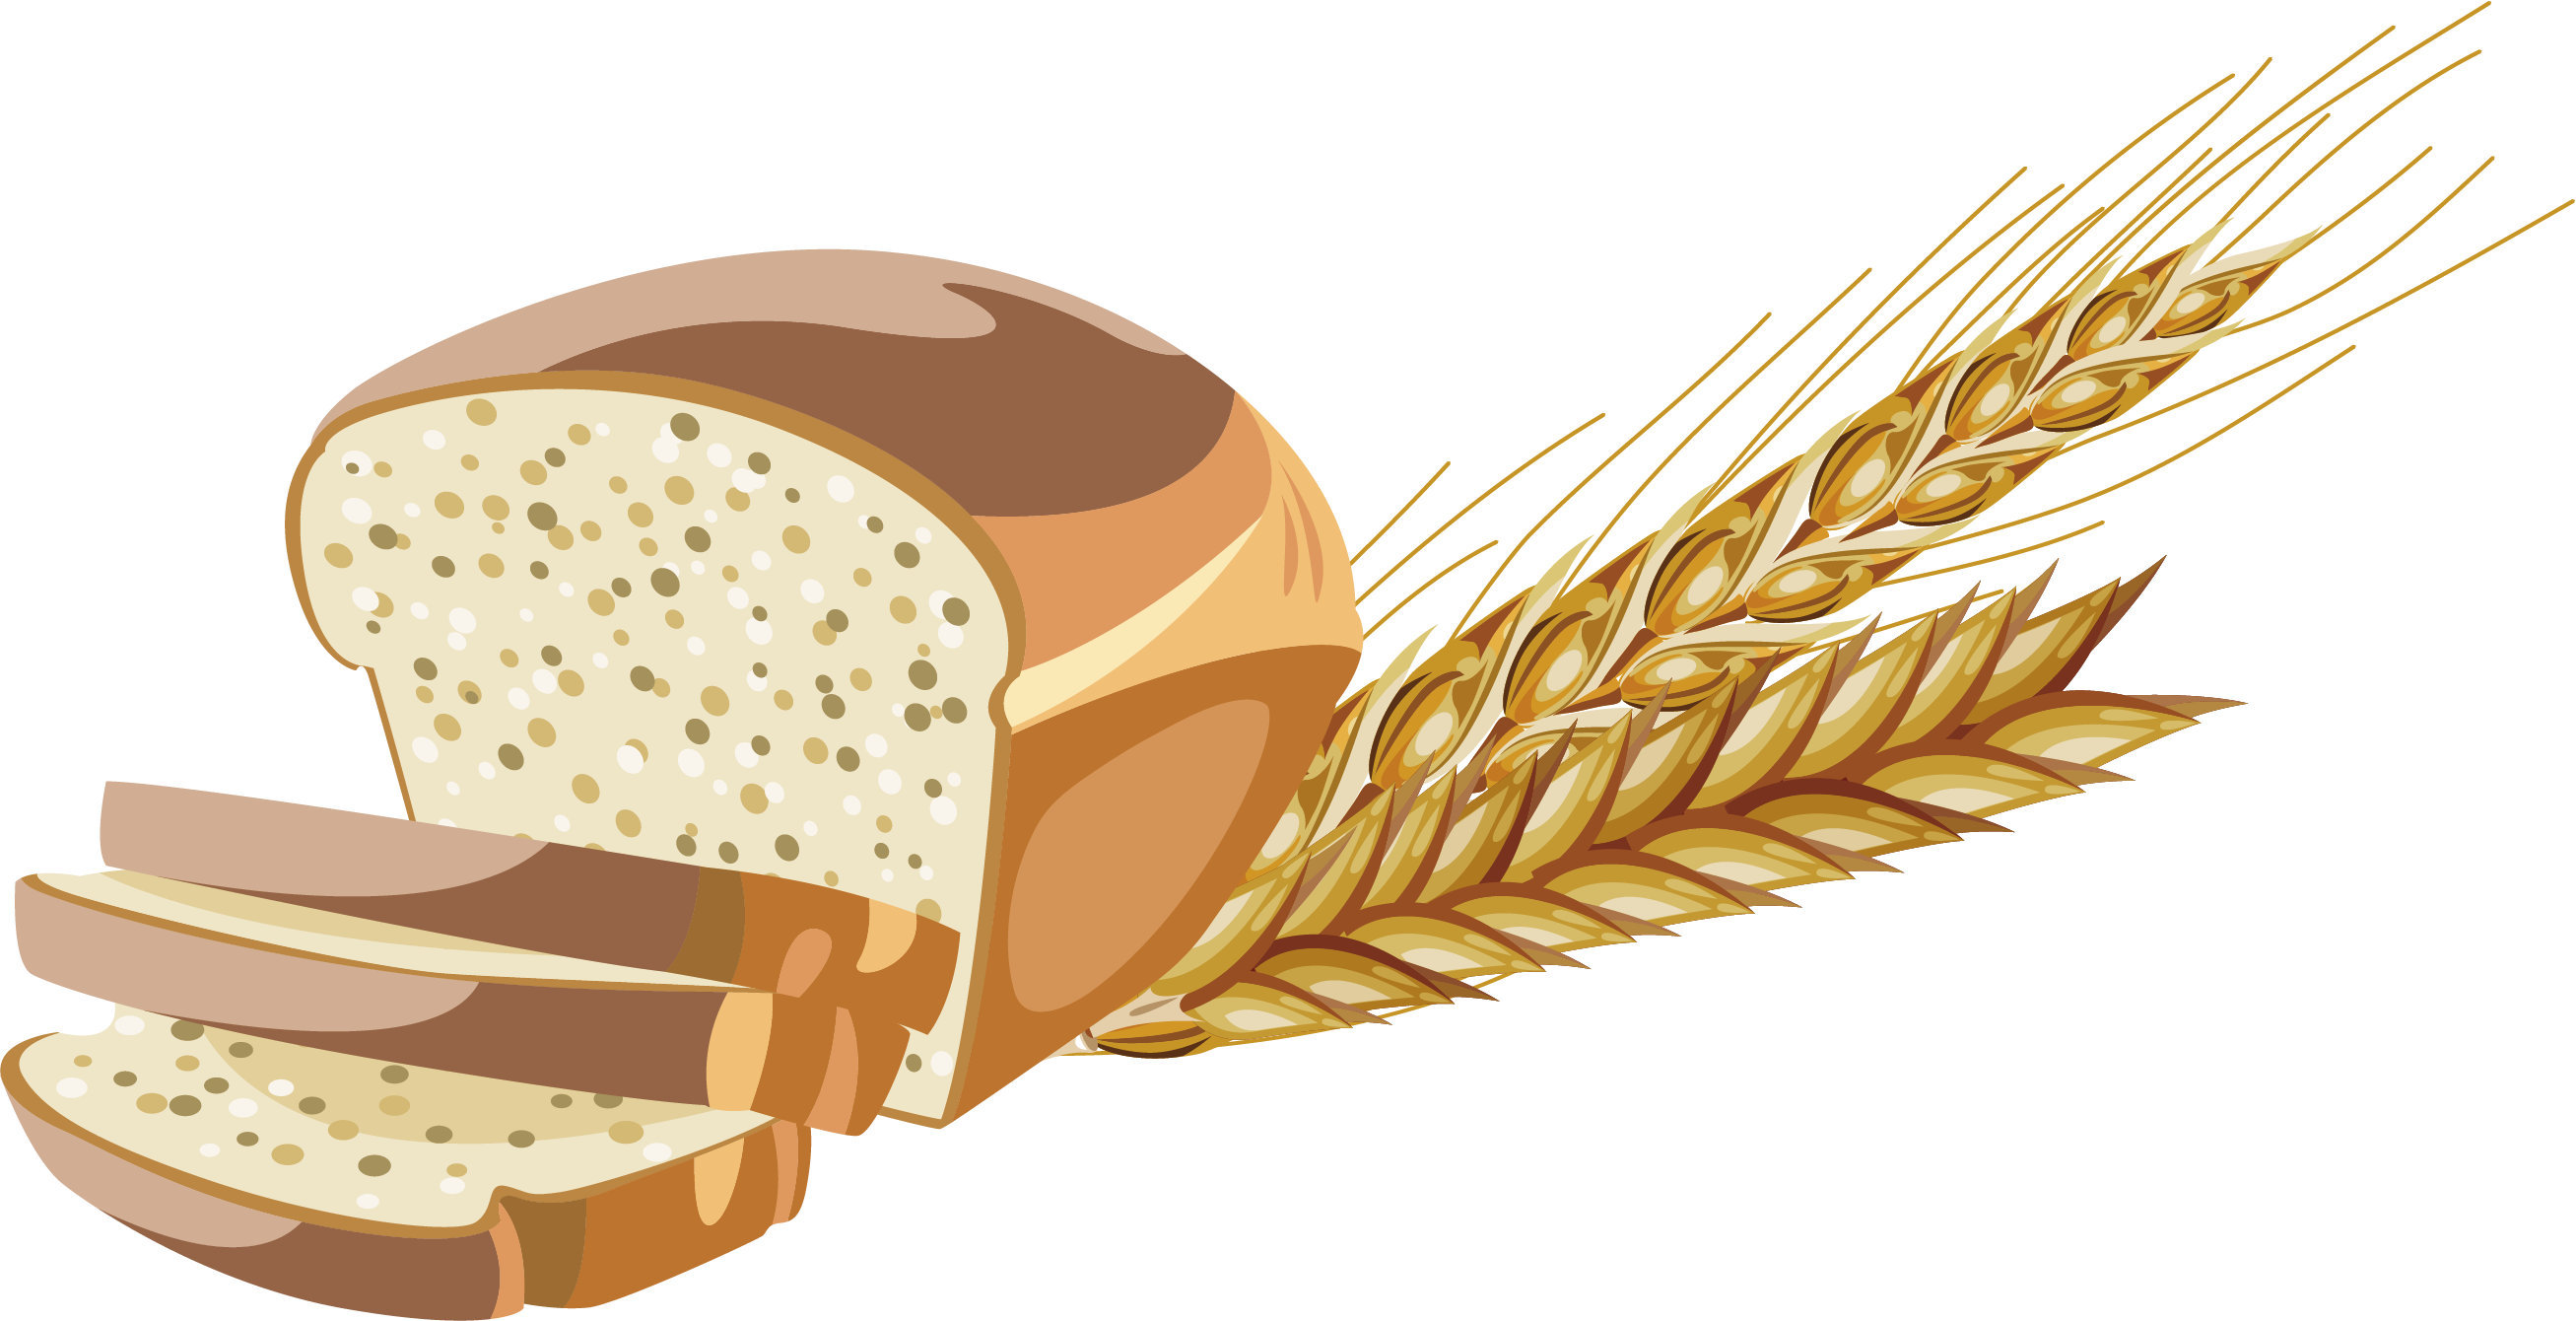 graphic freeuse library Whole bread brown grain. Wheat flour clipart